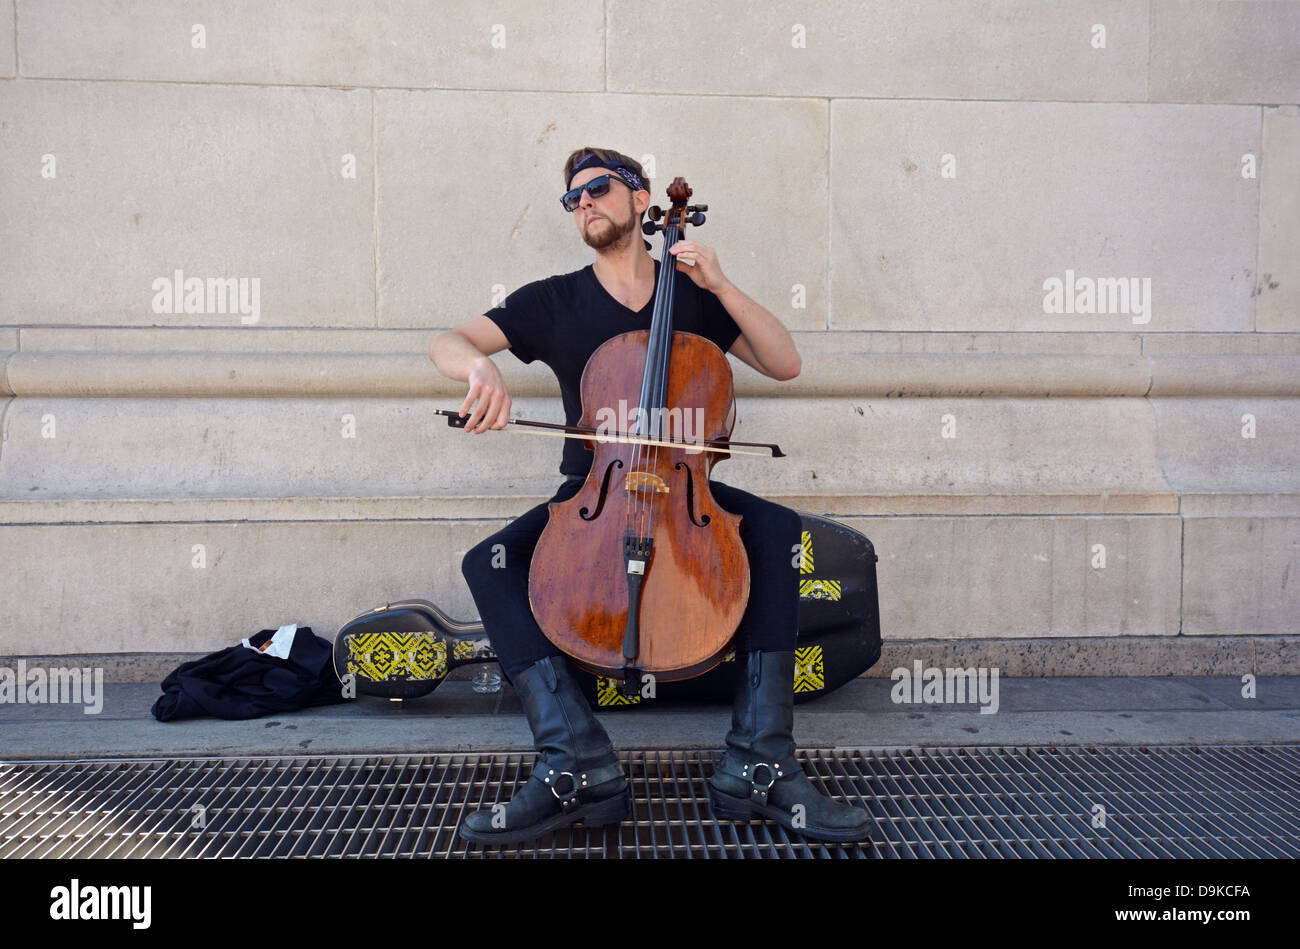 Portrait of a street musician playing the cello in Washington Square Park in Greenwich Village, New York City - Stock Image